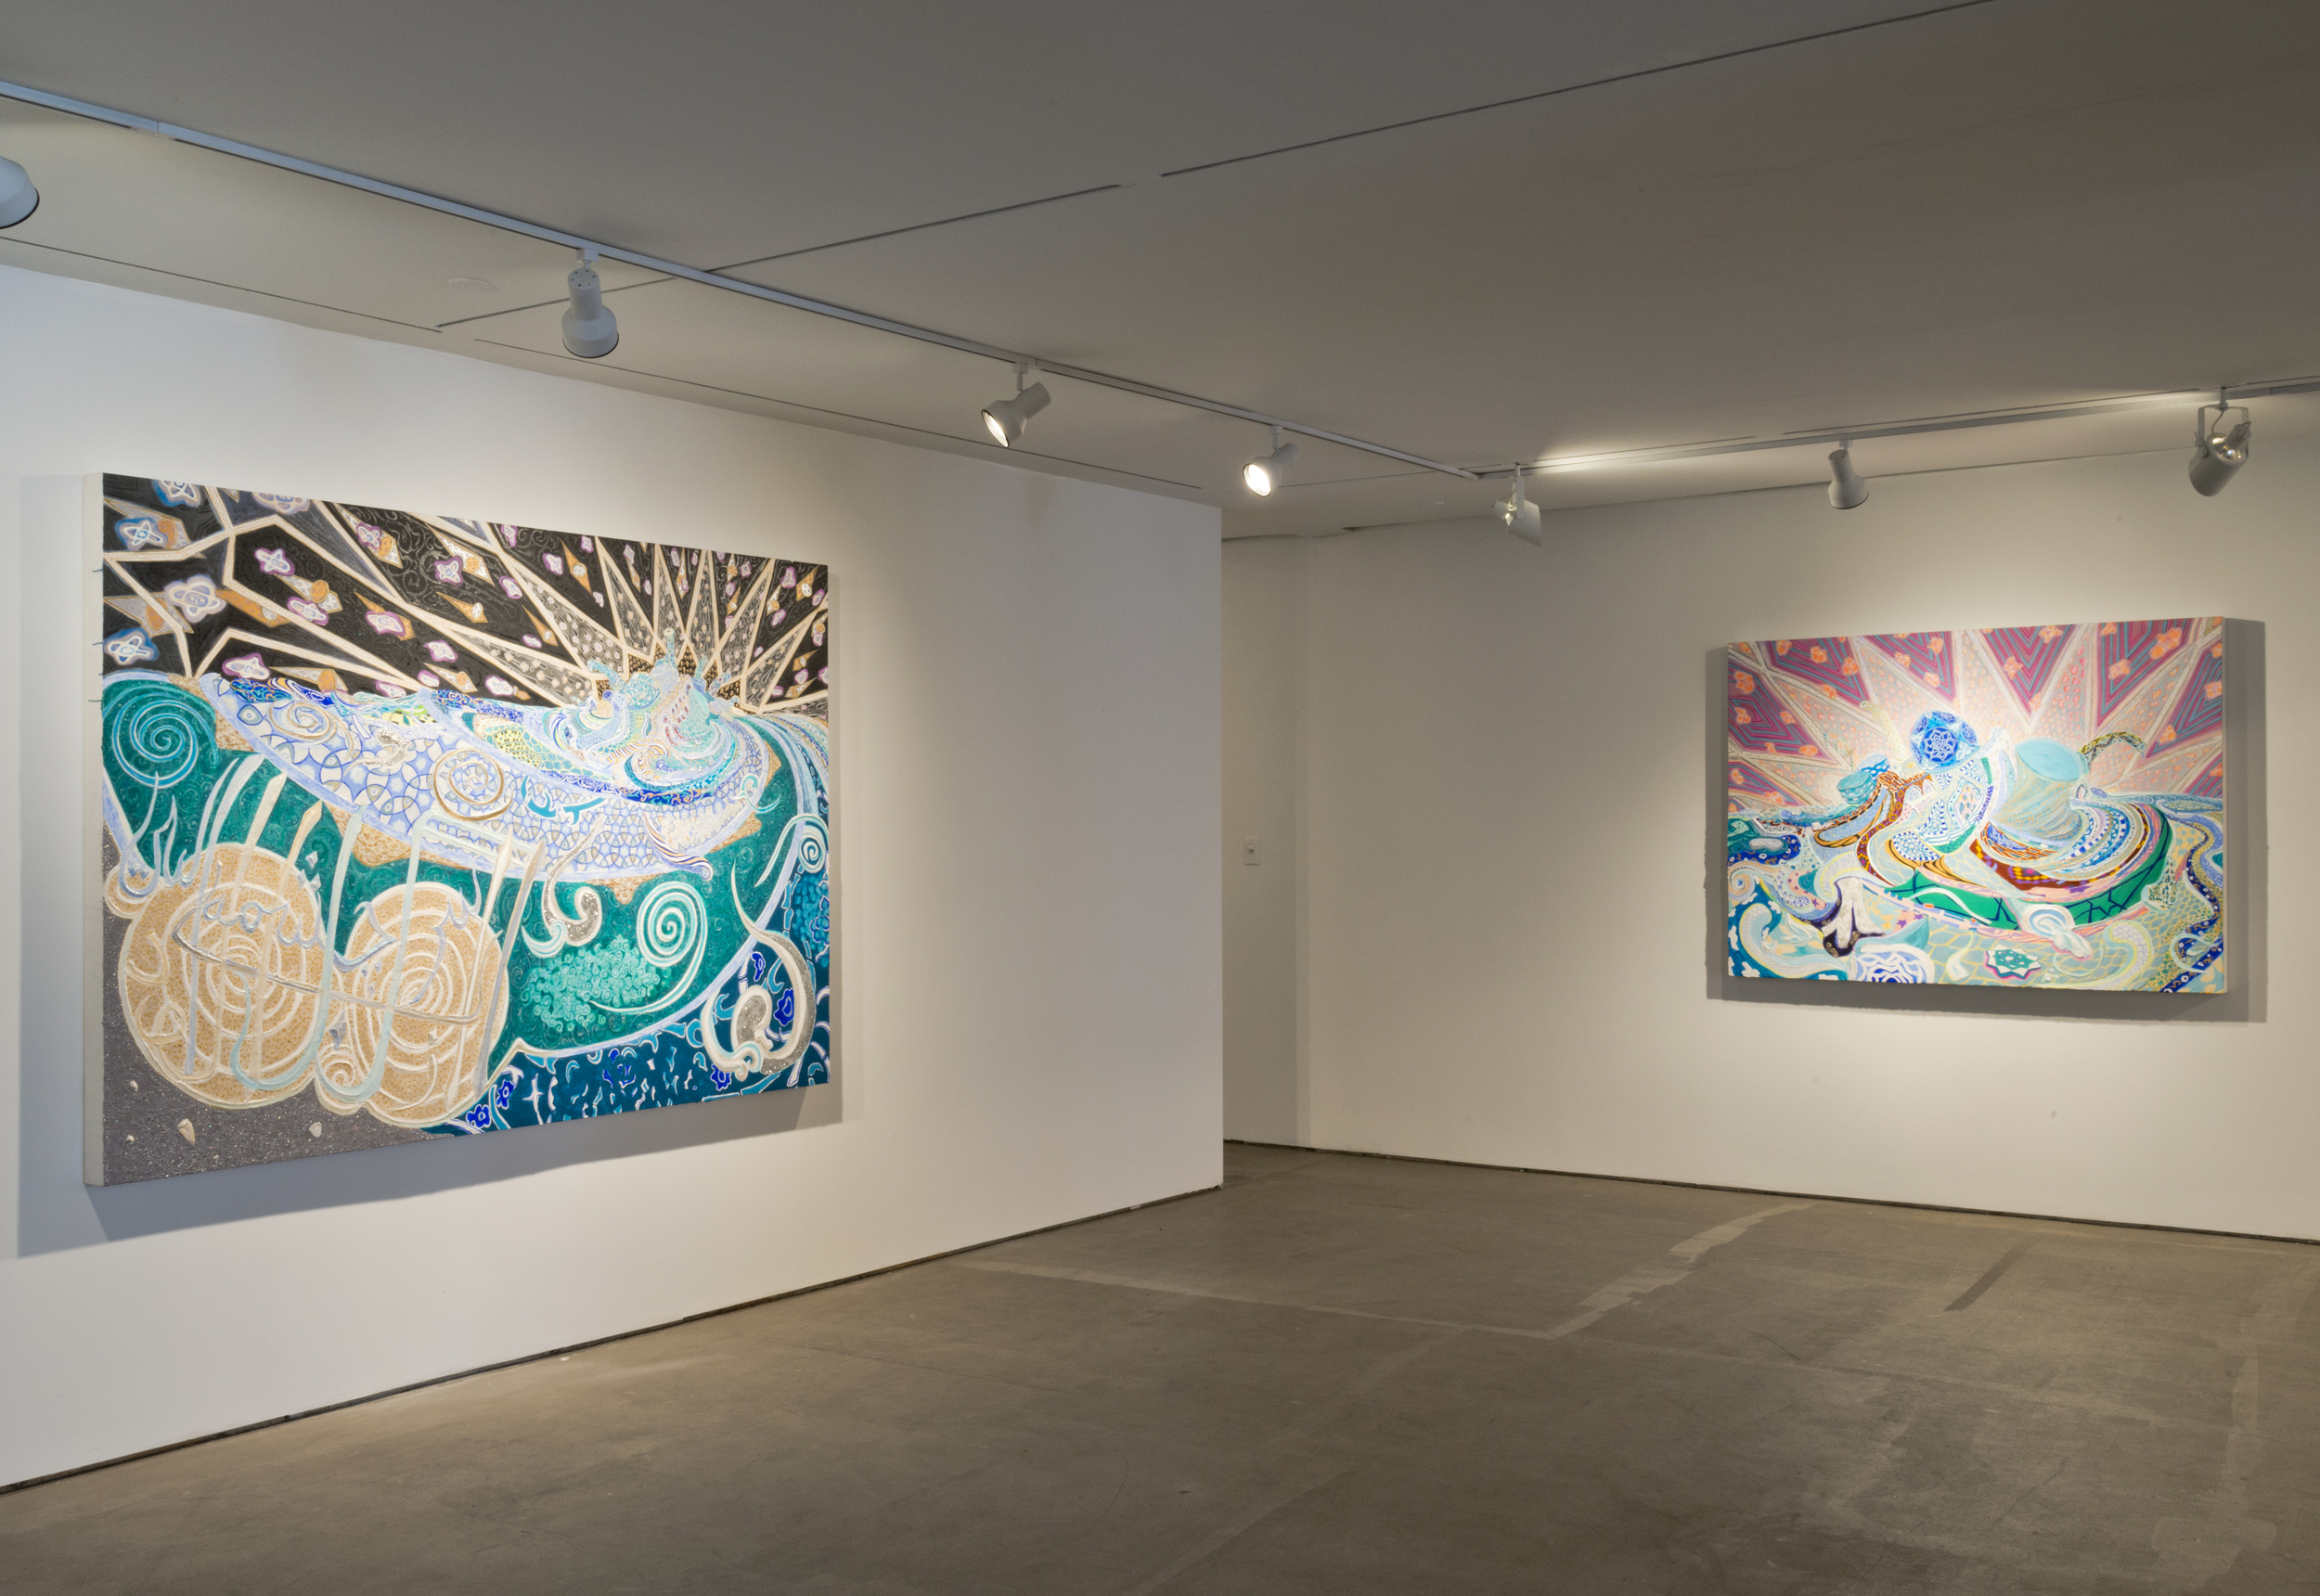 """Although Ahkami is moving away from her overtly political work of the last decade, in a few works in the exhibition, she revisits her iconography of melting Persianate cityscapes spreading cartoonishly towards the viewer. For Ahkami, this caricature of Iran's regime, and of fears of its nuclear threat, is a product of consumption: """"of media images that have distorted the view of Iran from a distance"""". Her recent returns to this theme are spectacles of pattern that shift between entrancing and cartoonish, with more fascination than angst. (Excerpt from Press Release)"""